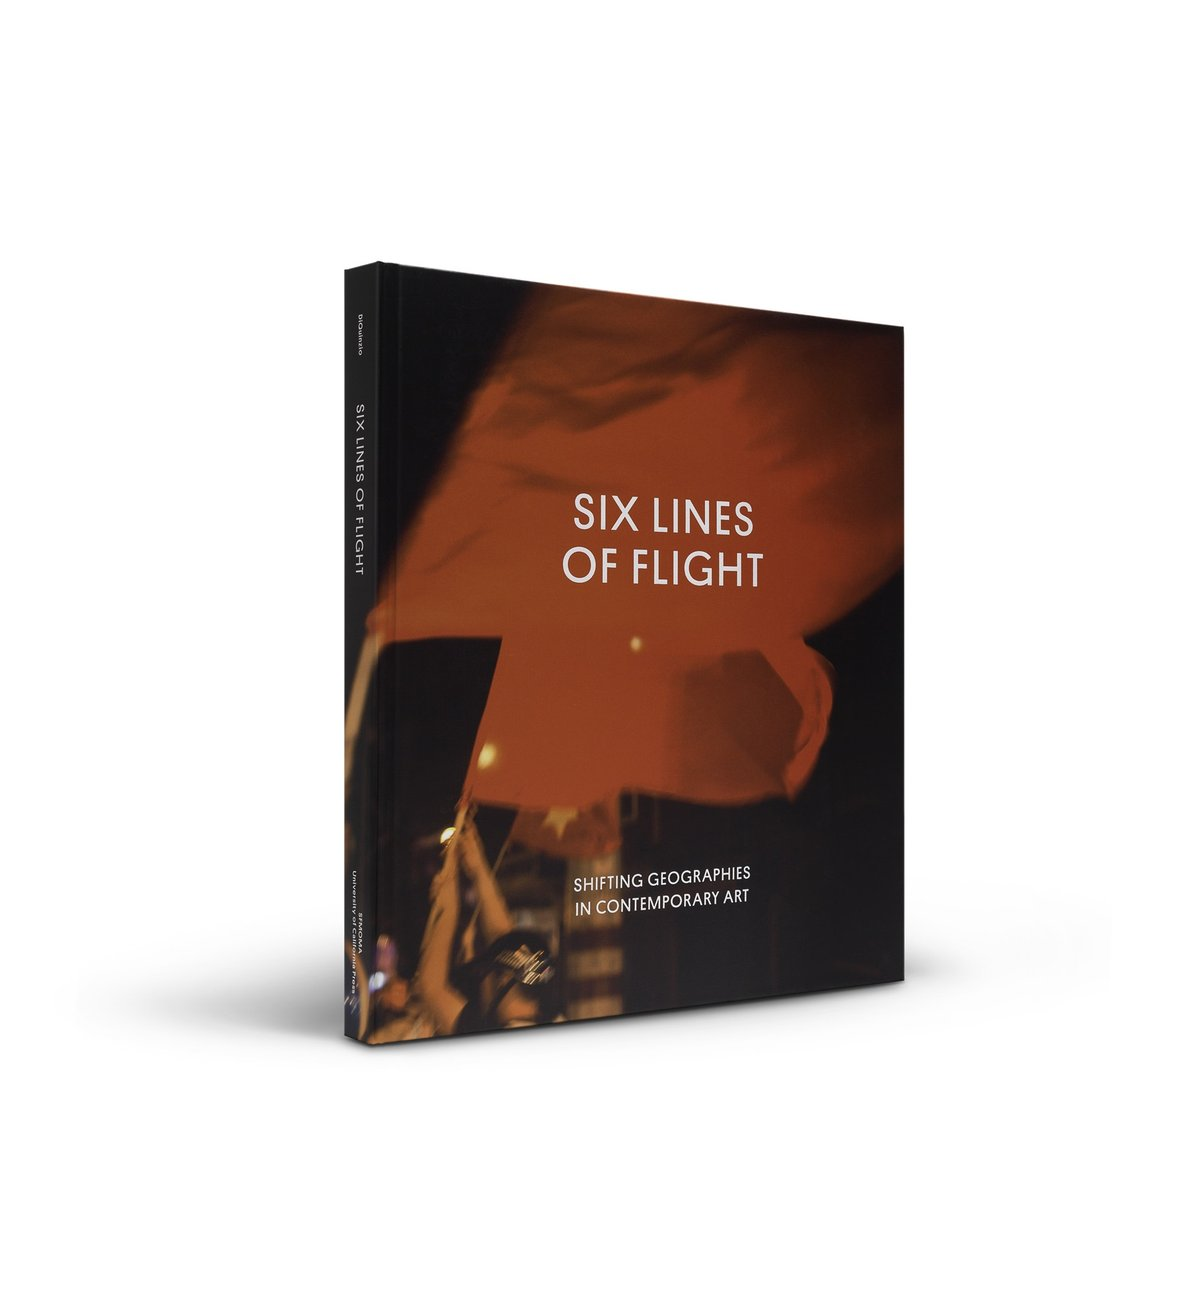 Six Lines of Flight publication cover